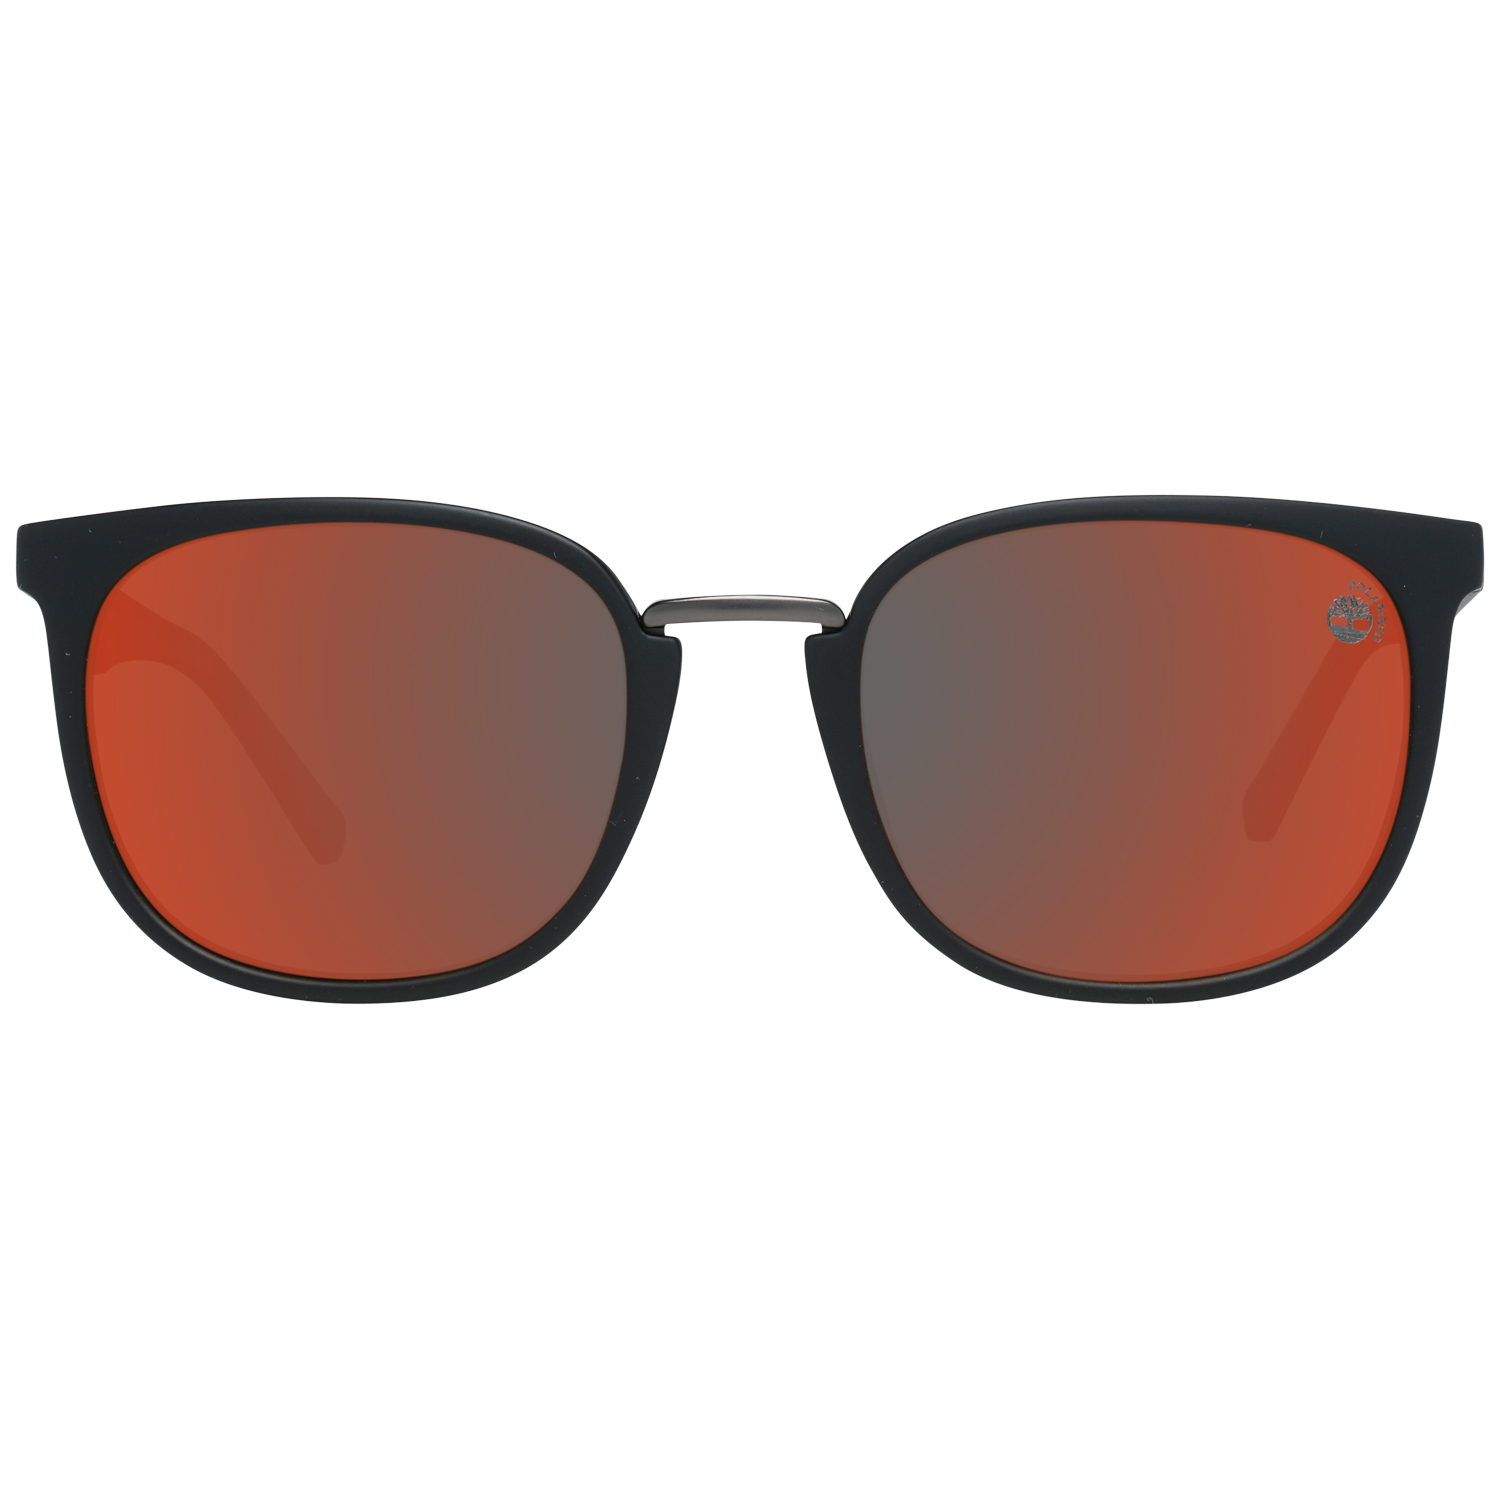 Timberland Sunglasses TB9175 02D 54 Men Black